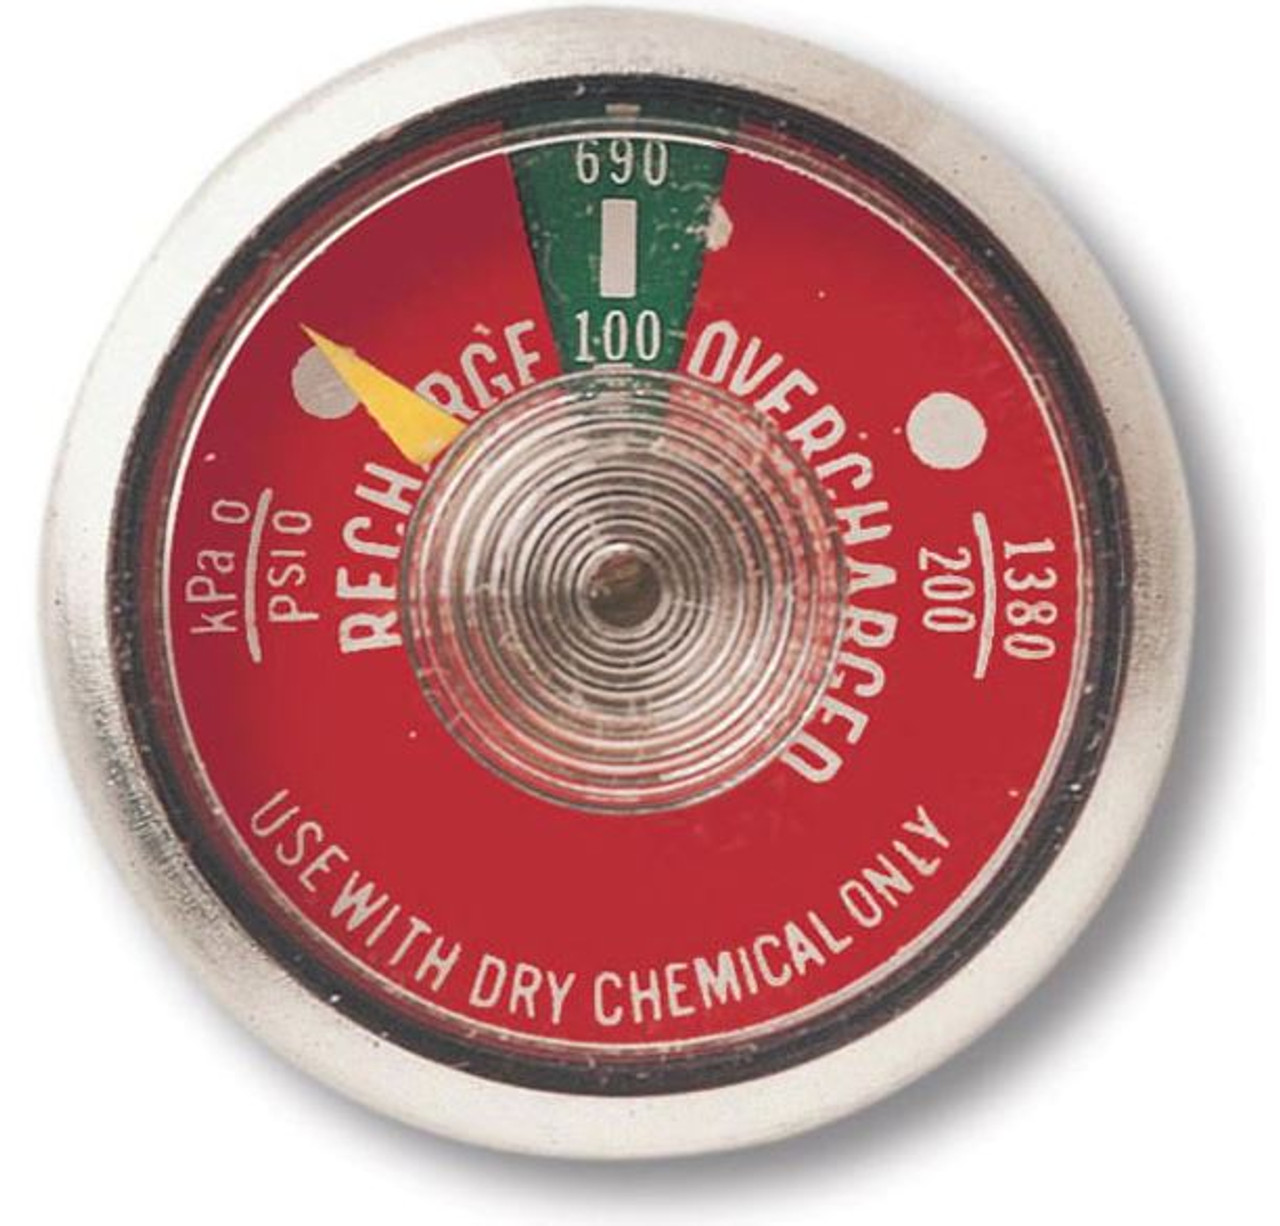 G240 - 240 lb Dry Chemical Fire Extinguisher Gauge